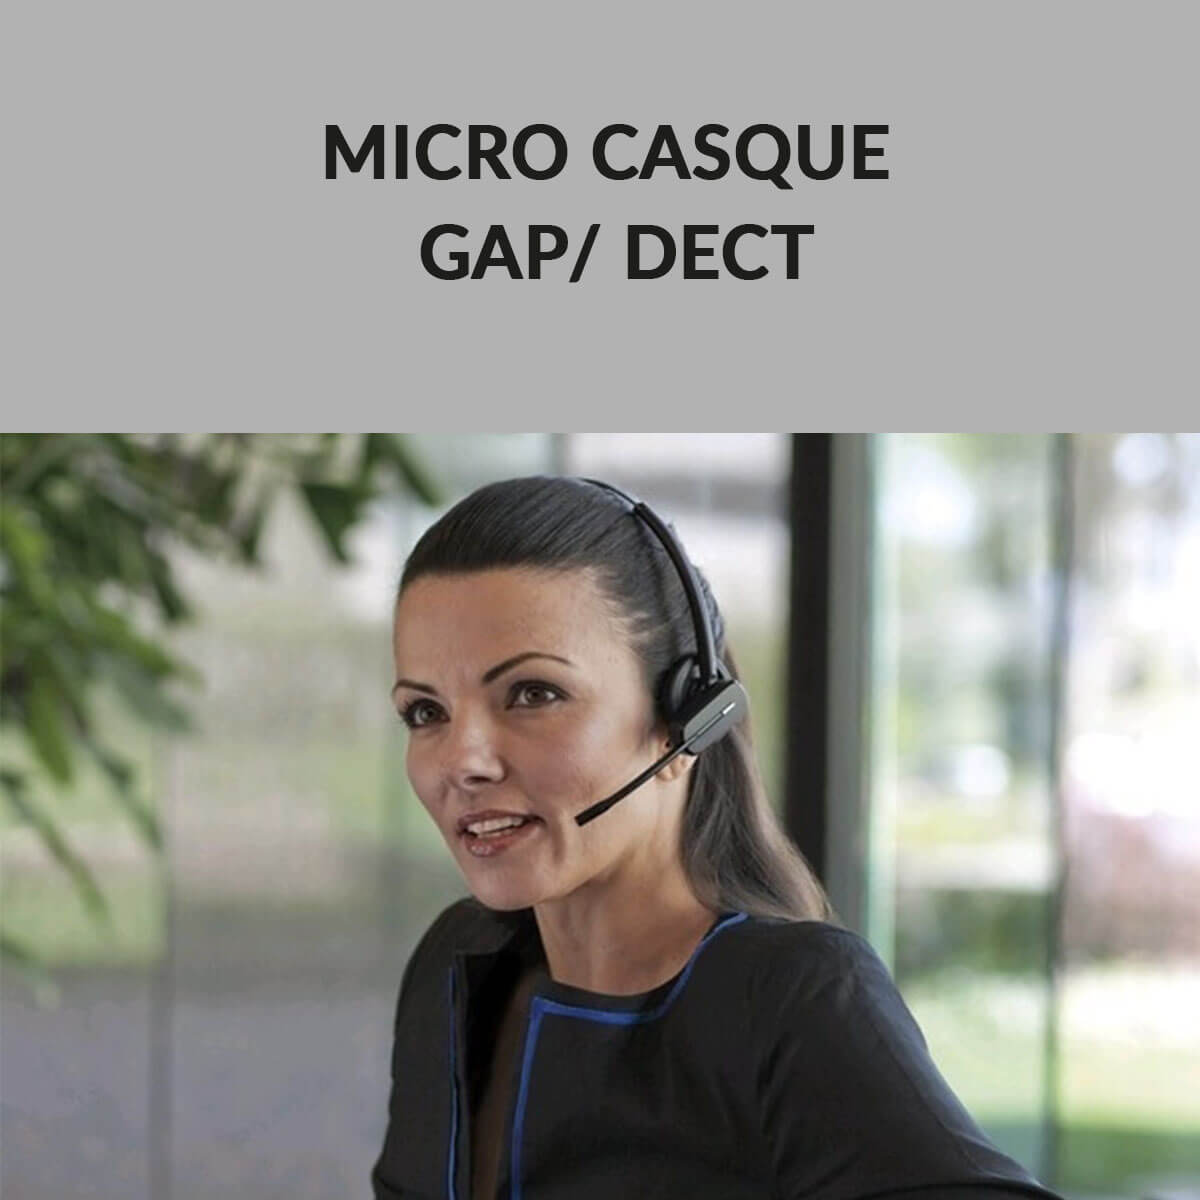 Micro casque GAP dect